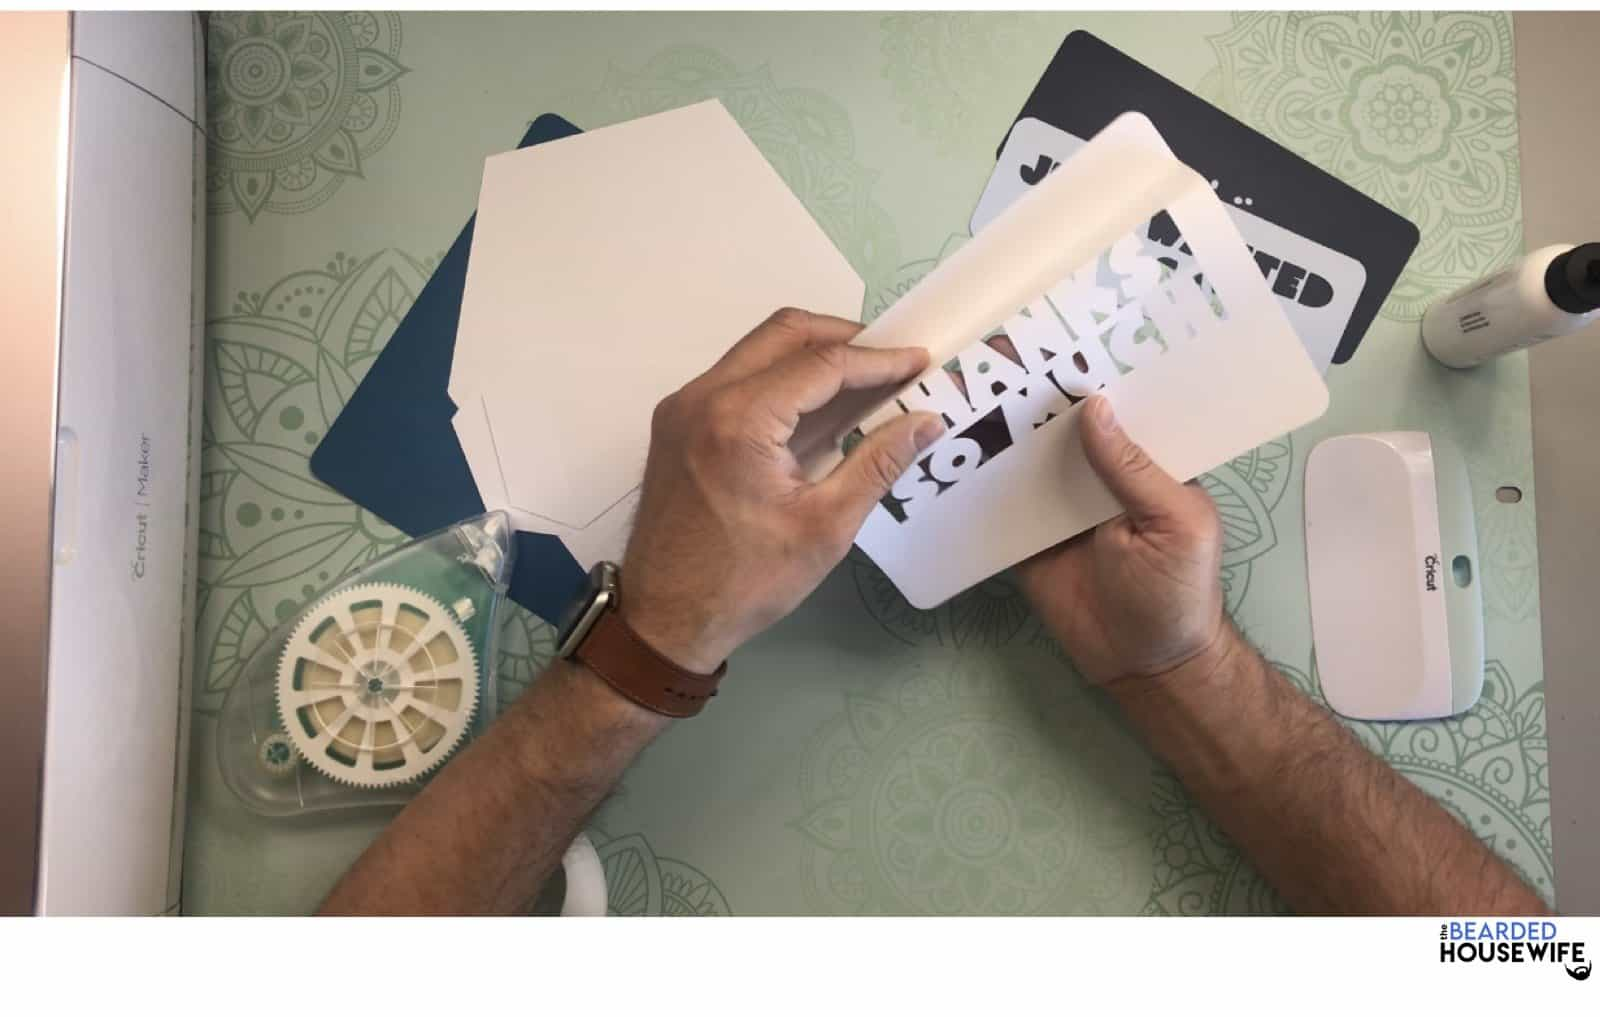 fold along the score line by pressing the fold with your fingers